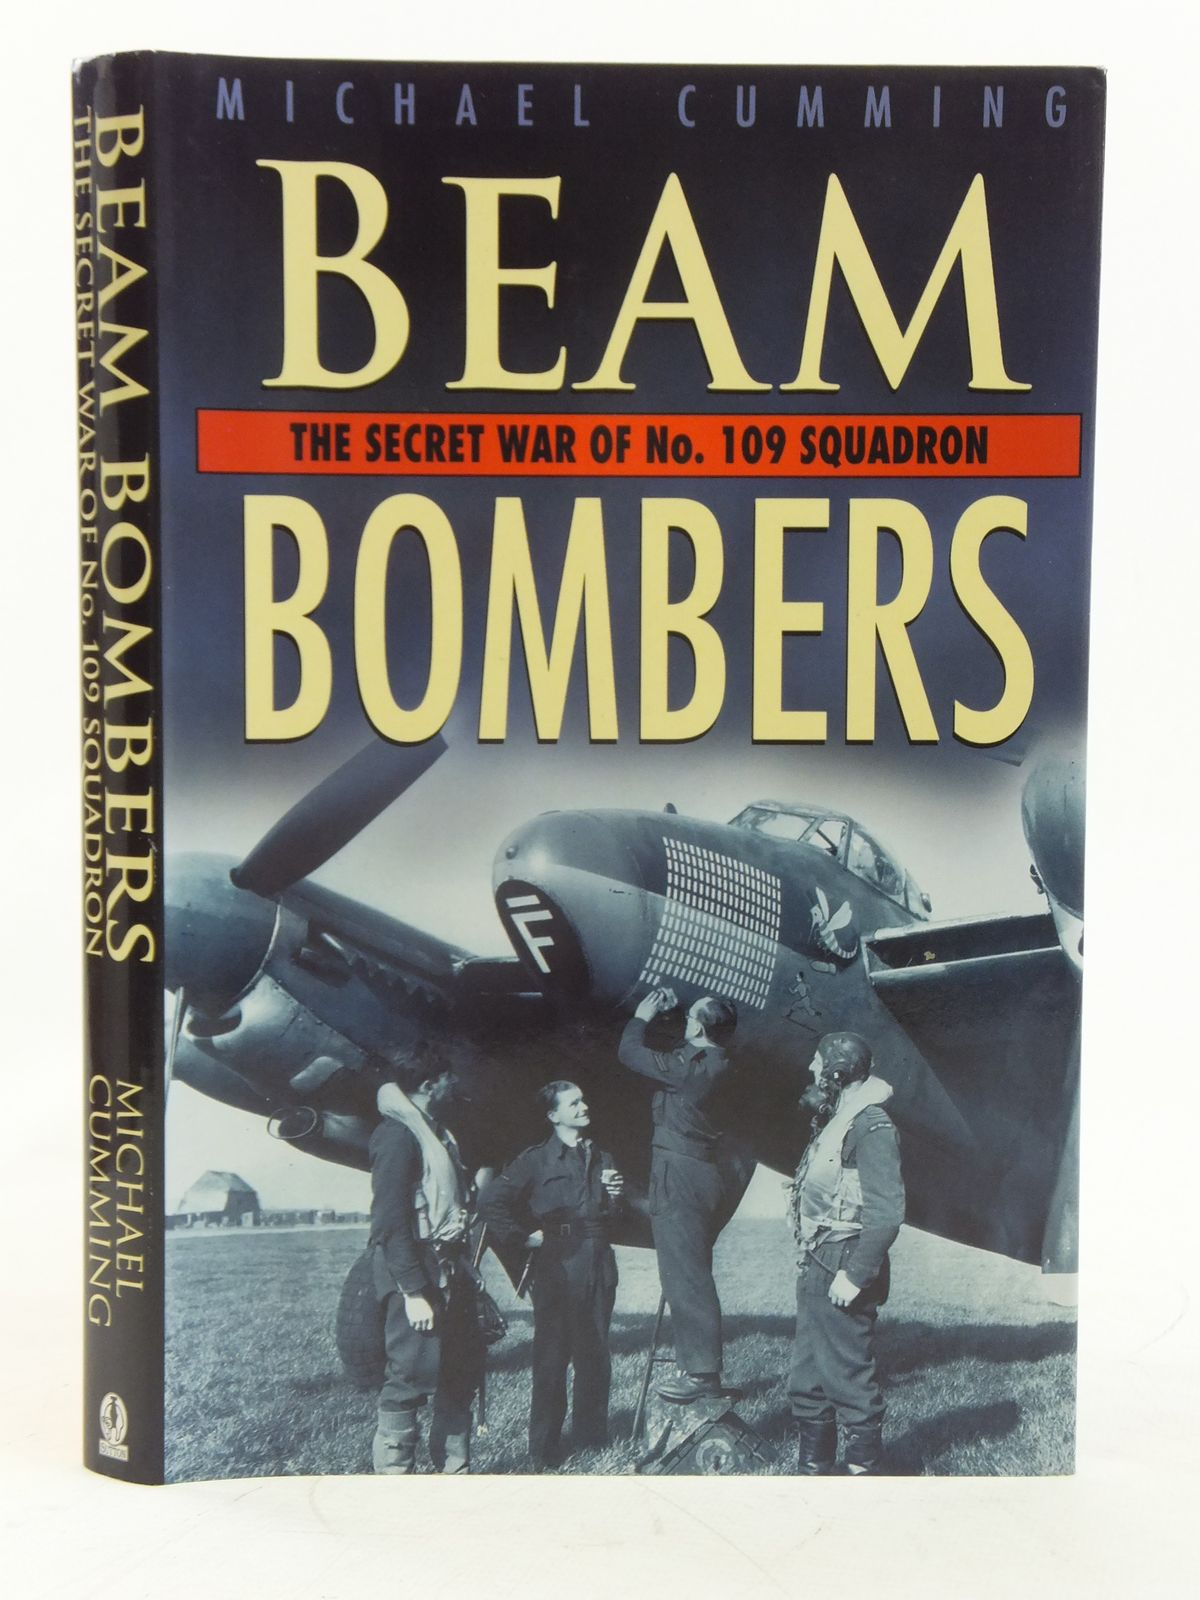 Photo of BEAM BOMBERS THE SECRET WAR OF No. 109 SQUADRON written by Cumming, Michael published by Sutton Publishing (STOCK CODE: 1606703)  for sale by Stella & Rose's Books